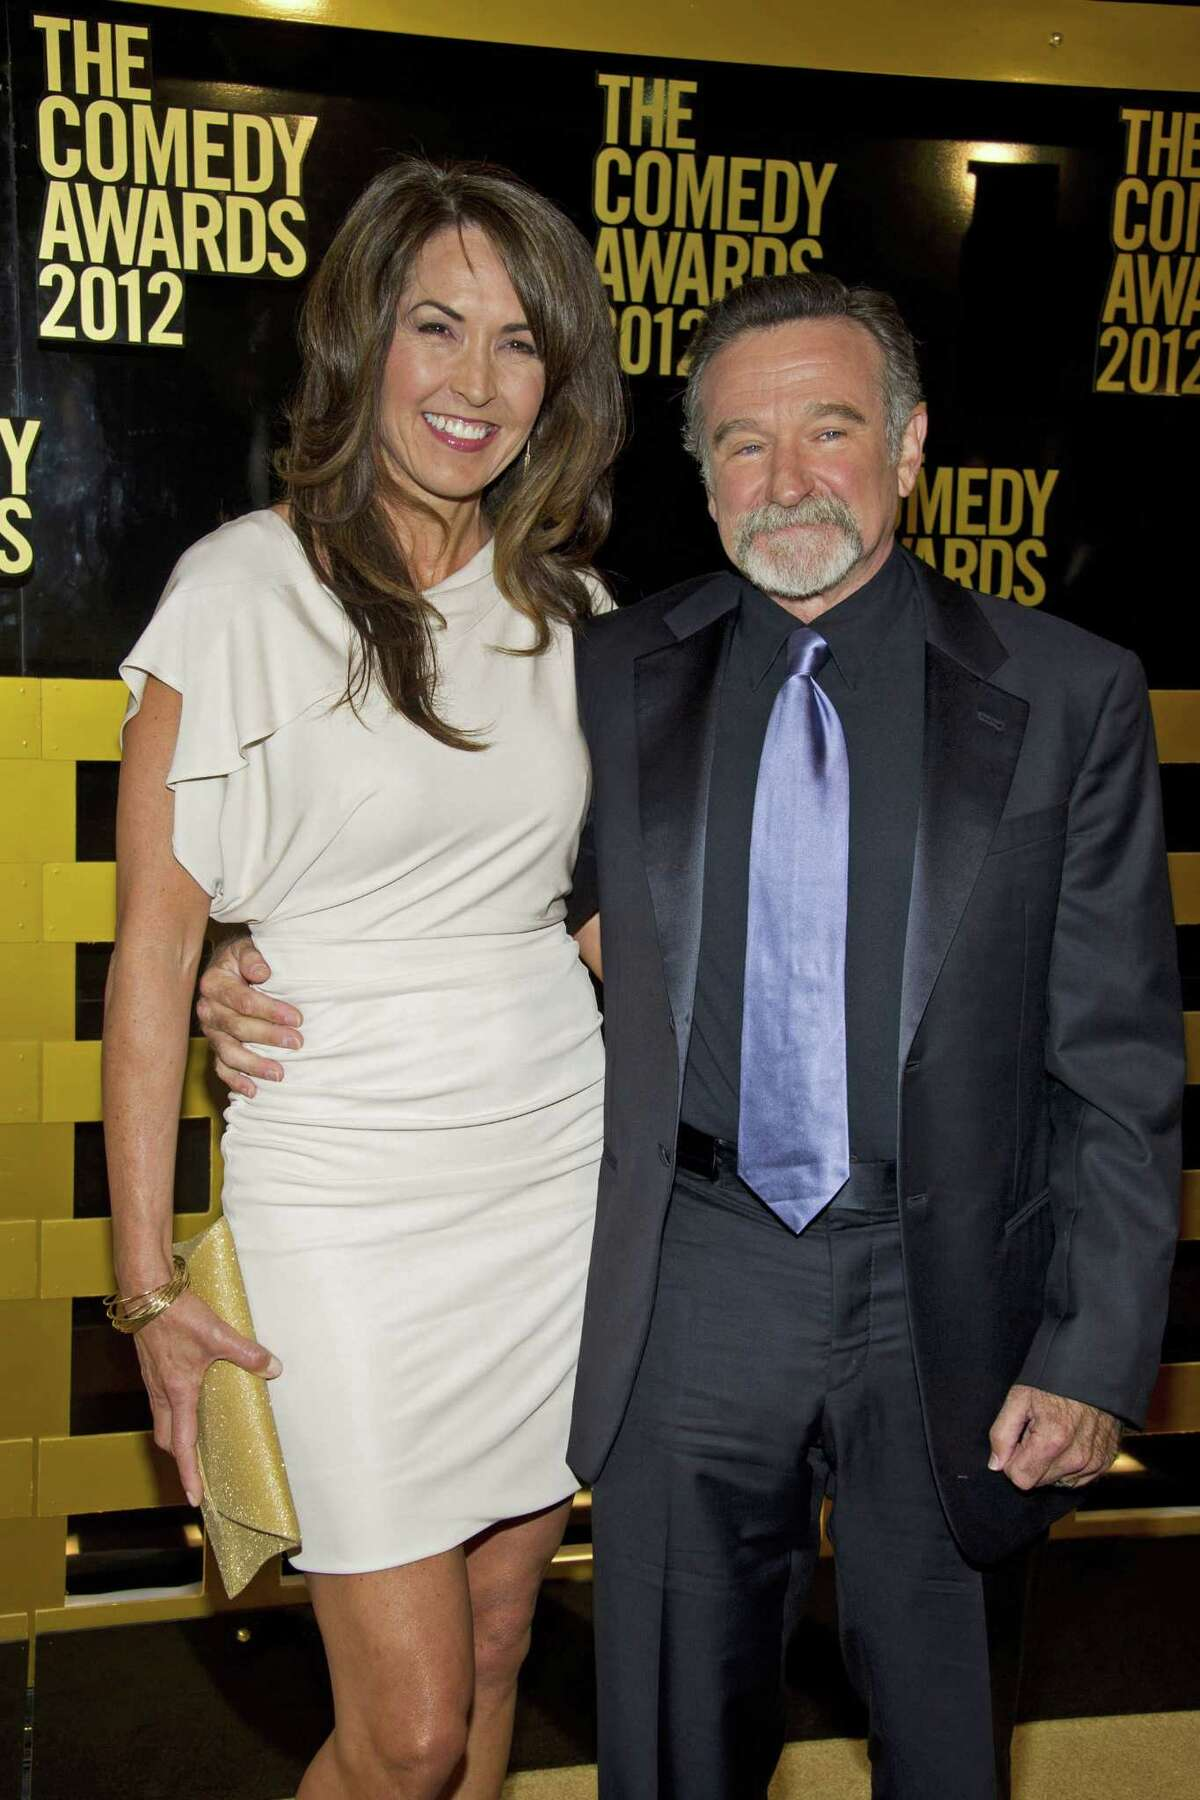 FILE - In this April 28, 2012, file photo Robin Williams, right, and his wife, Susan Schneider arrive to the 2012 Comedy Awards in New York. Attorneys for Robin Williams' widow and his children have reached a settlement in their legal fight over his estate.